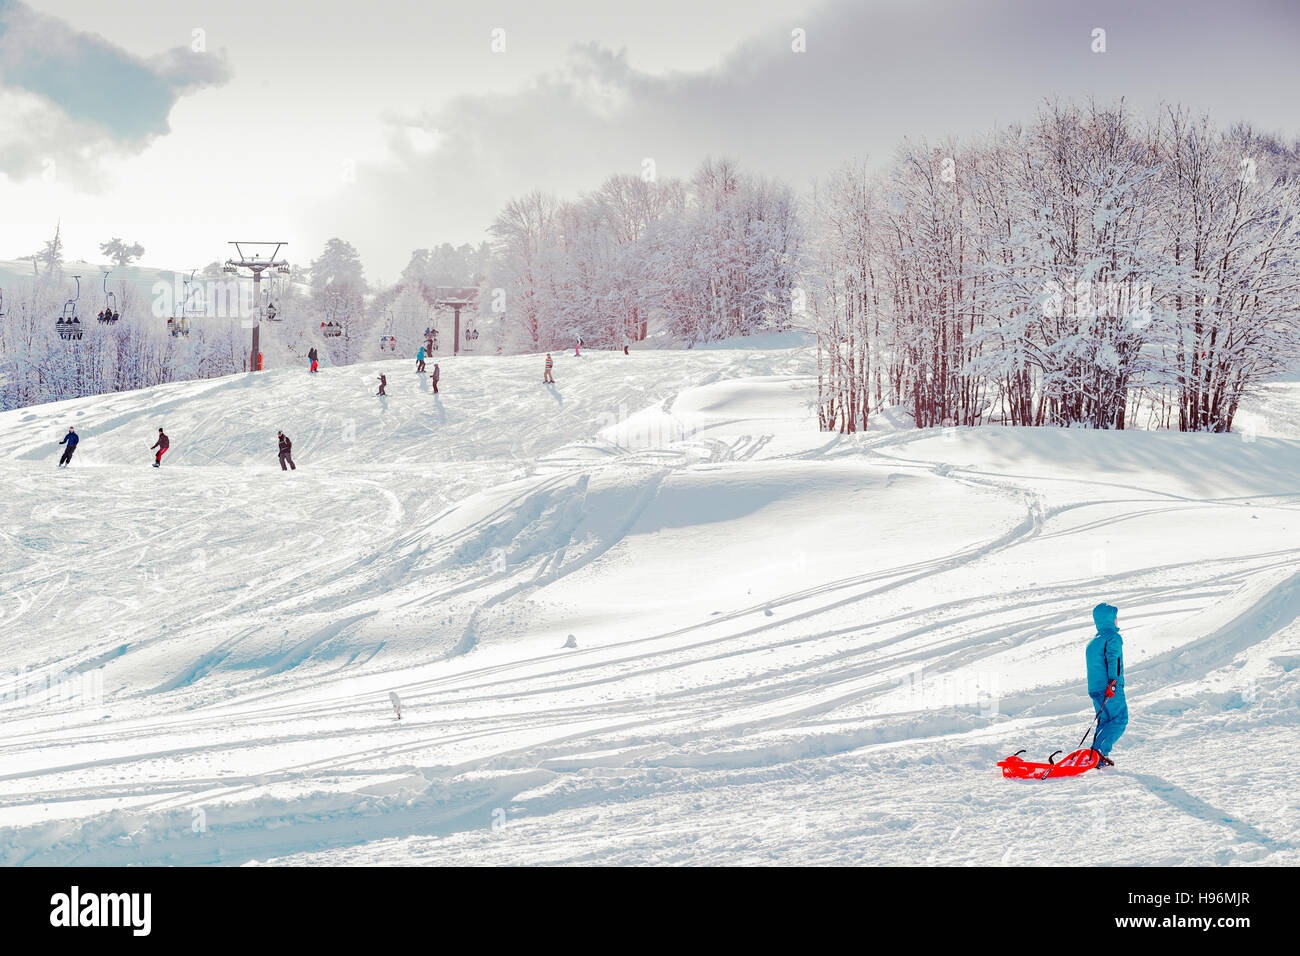 Skiers skiing in a track on ski resort at winter - Stock Image